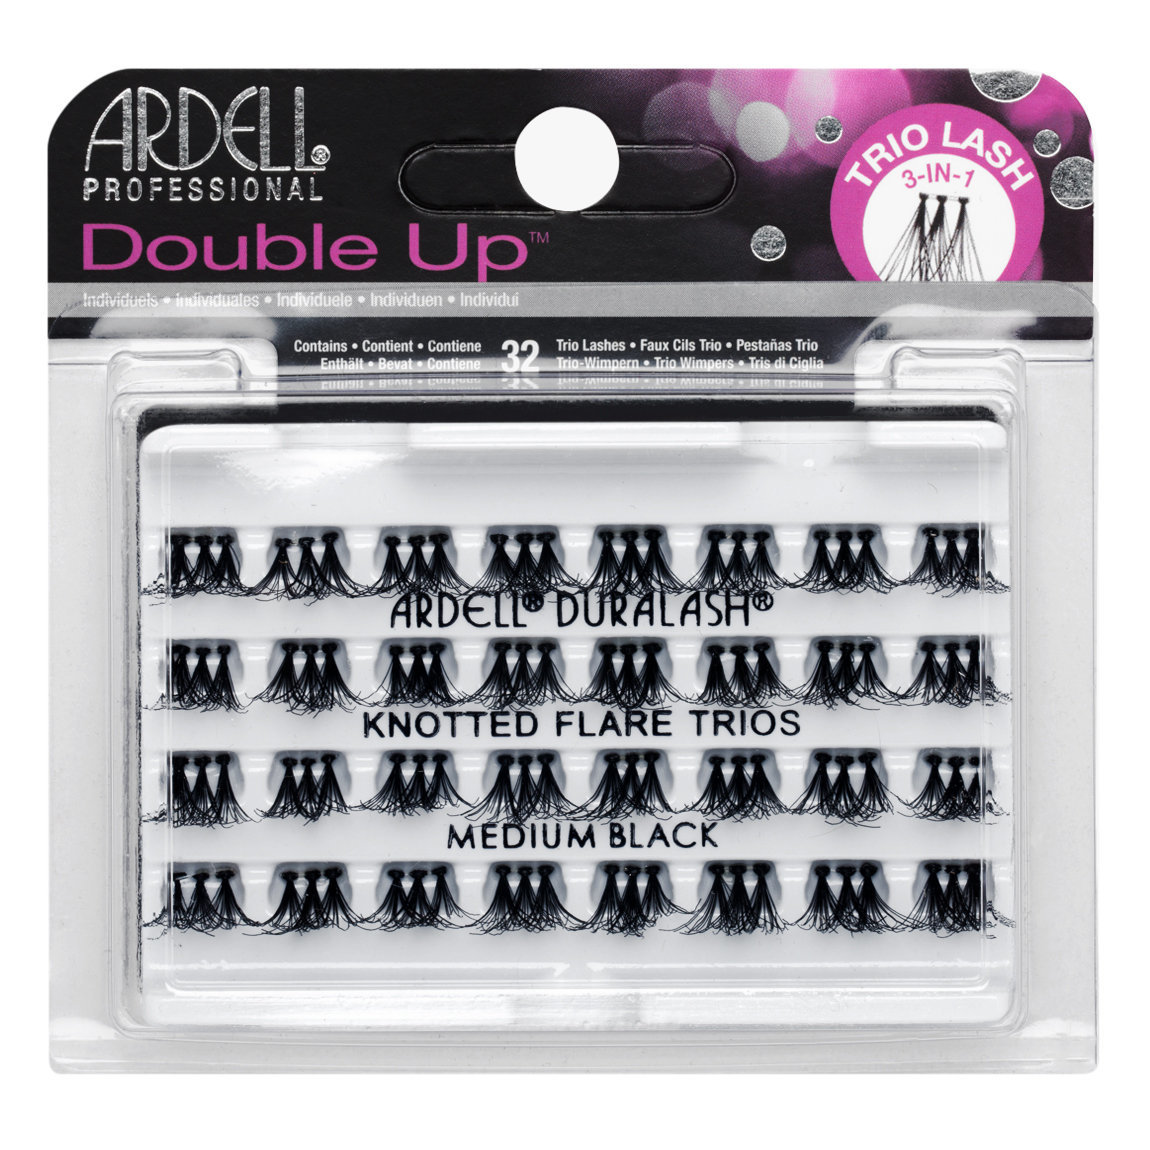 d076eea468f Ardell Double Up Trio Individuals Knotted Medium Black product smear.